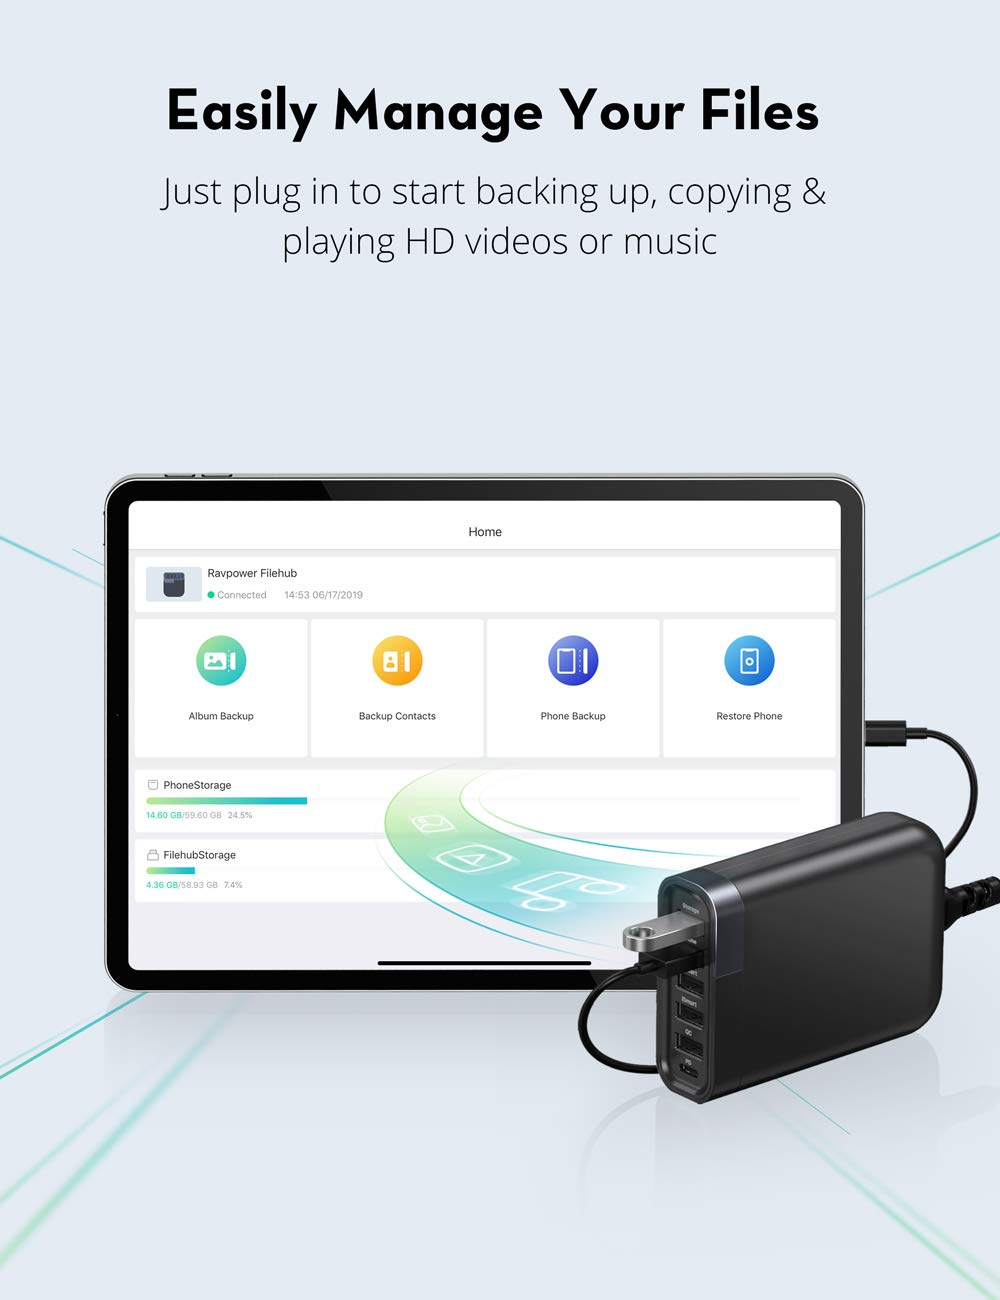 RAVPower 60W 6-Port USB C Charger Filehub with 24W Power Delivery, Data Transfer and Backup, Quick Charge 3.0, iSmart Multiple Port, Data Transfer and Backup $26.39 + FS